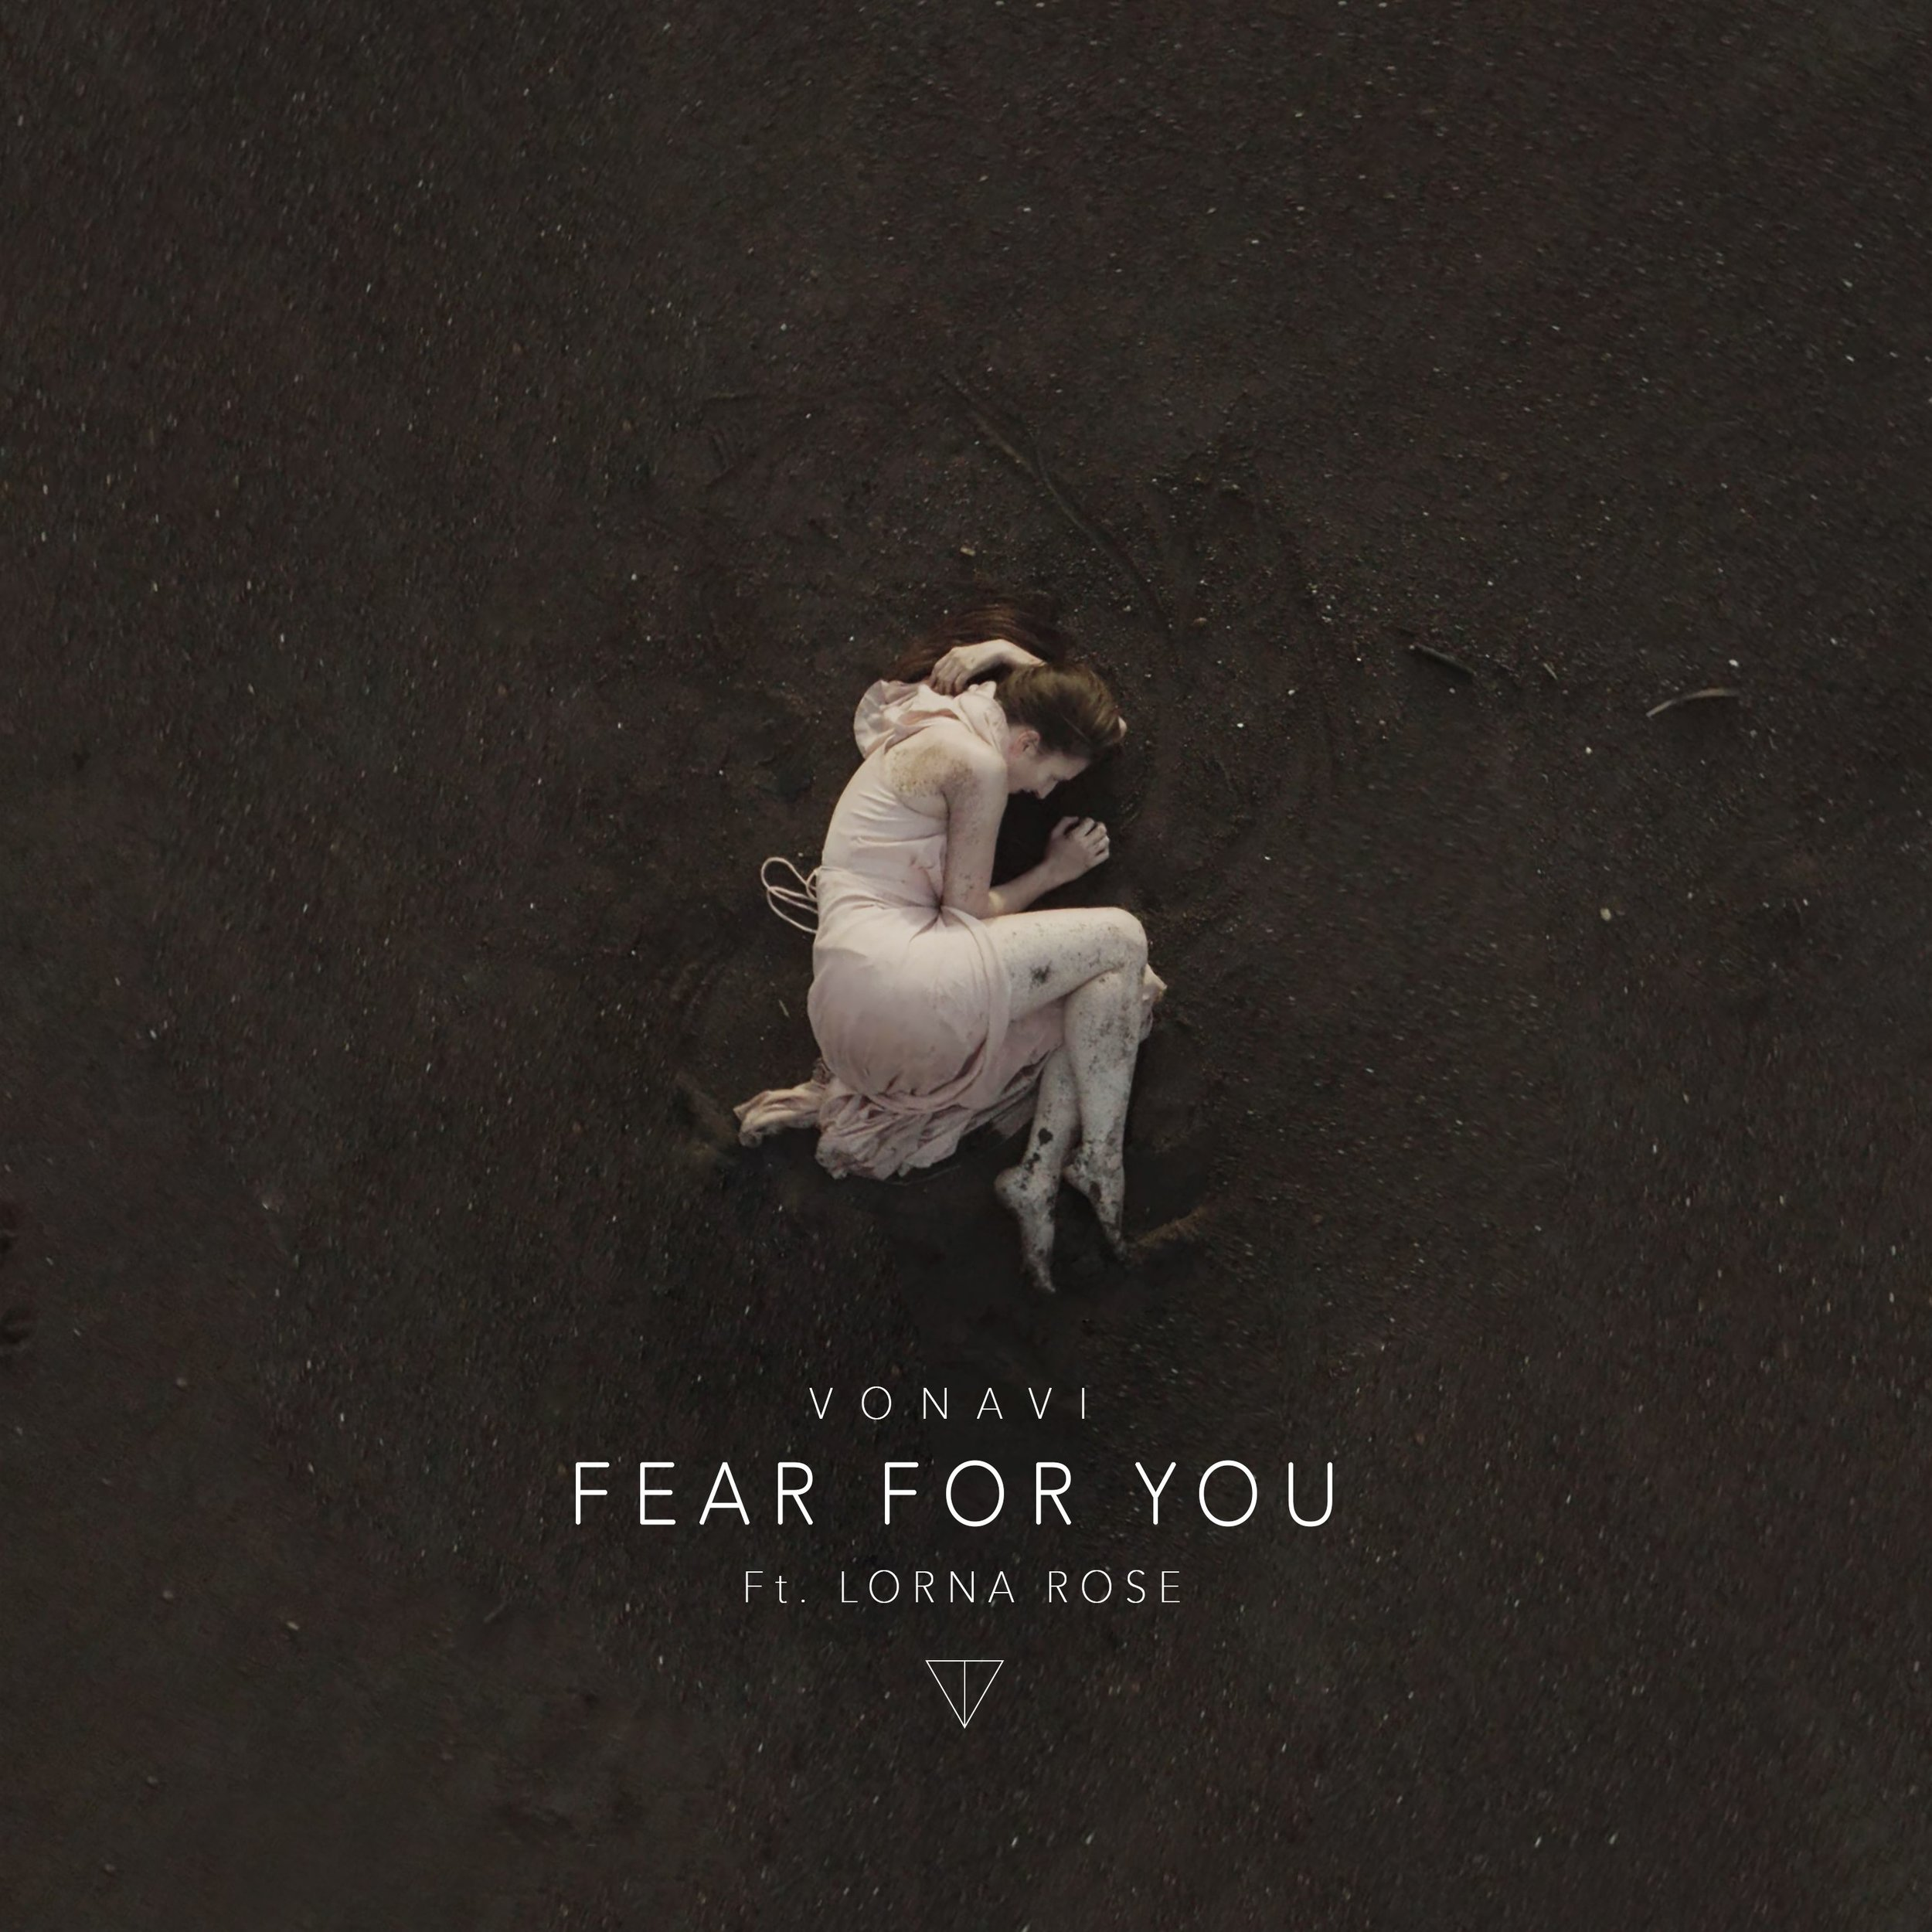 FEAR FOR YOU